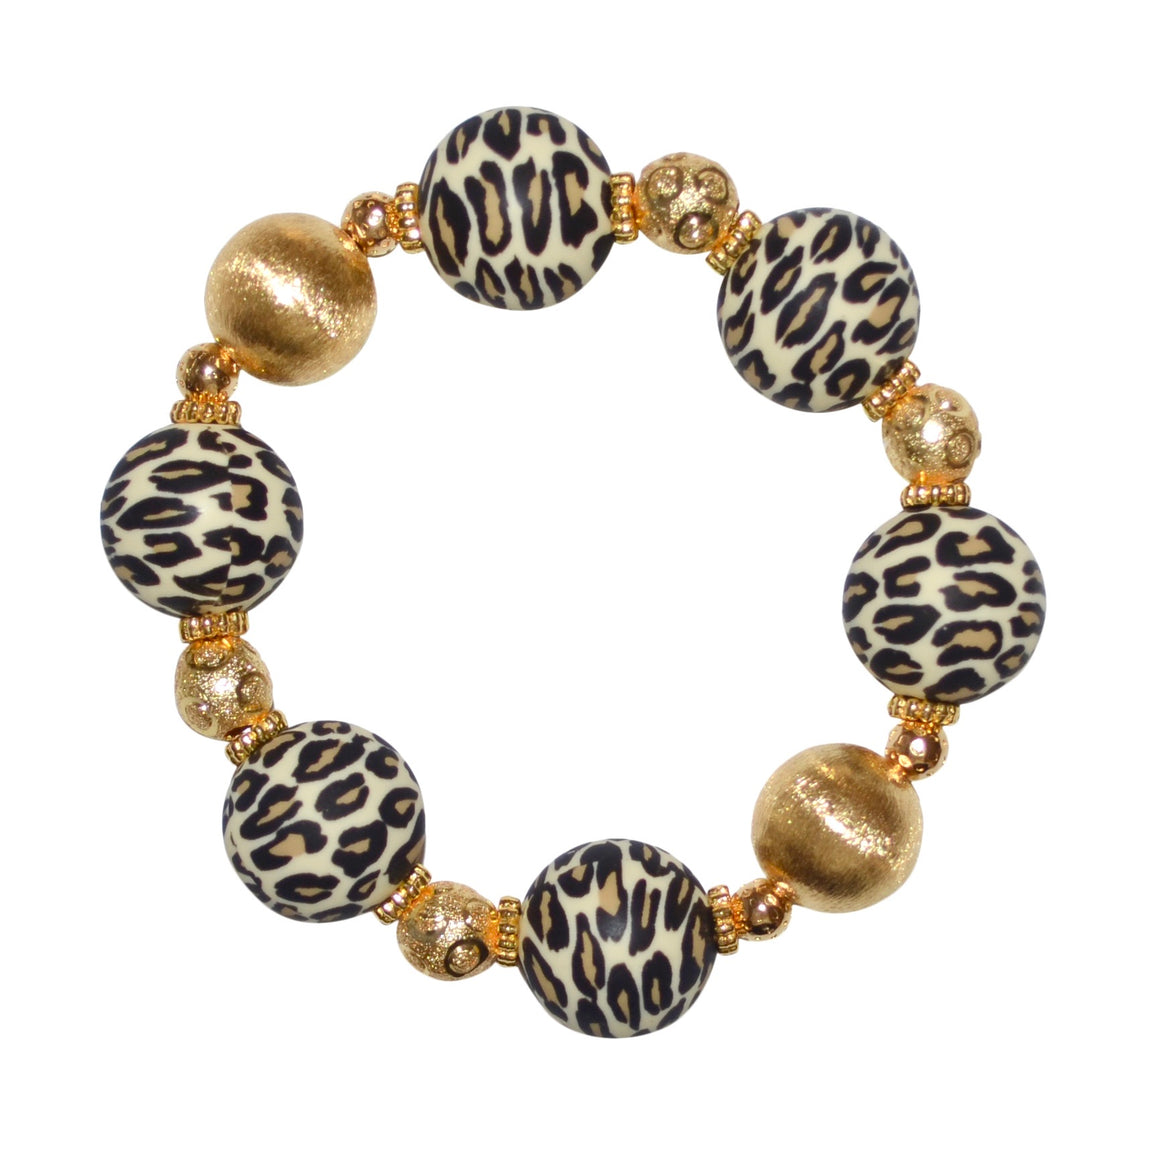 TESSA STATEMENT BRACELET IN LEOPARD AND GOLD